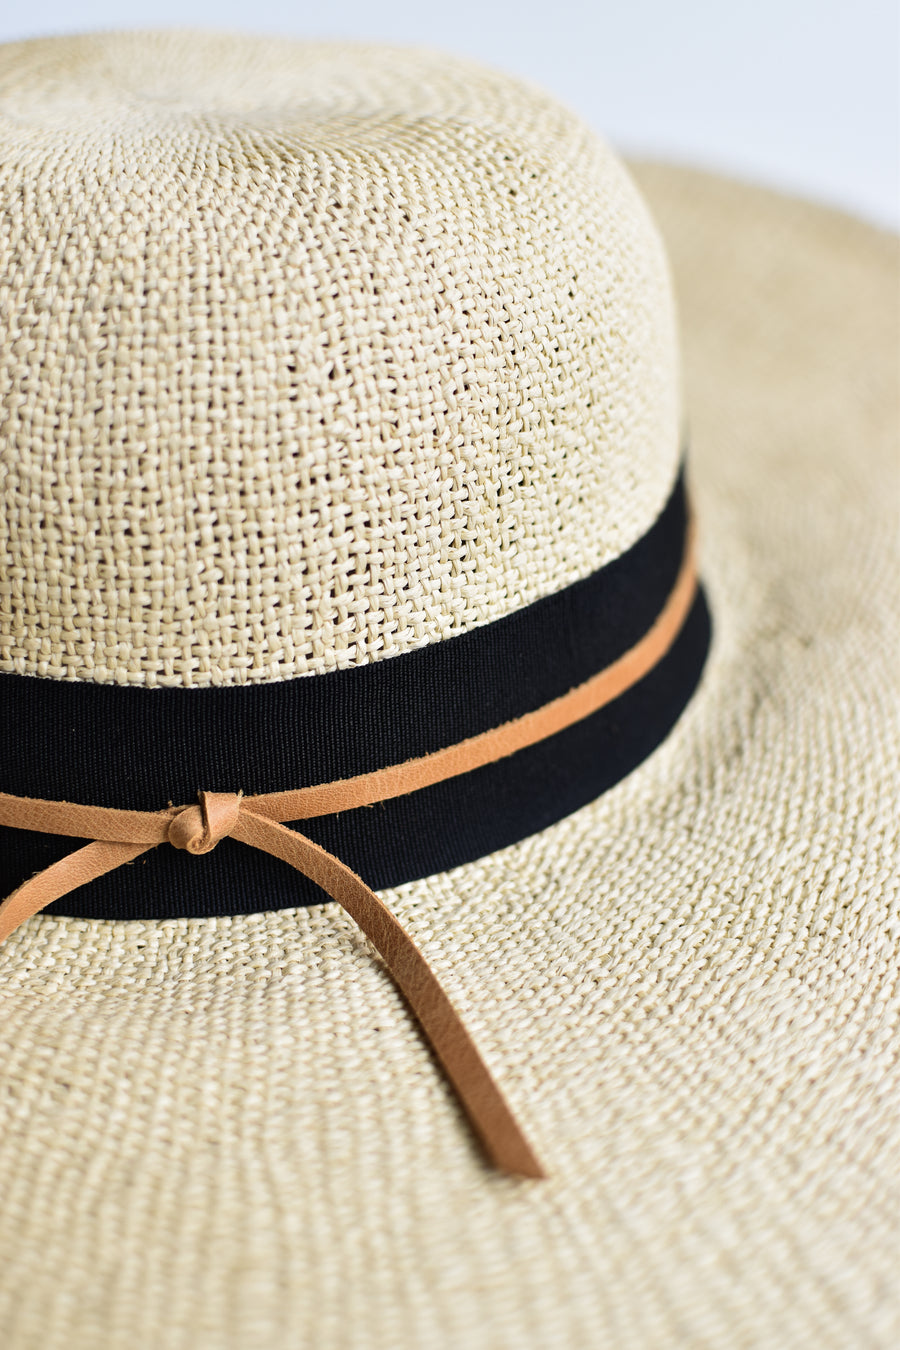 Close up of natural floppy straw hat with black grosgrain ribbon and thin brown leather band.